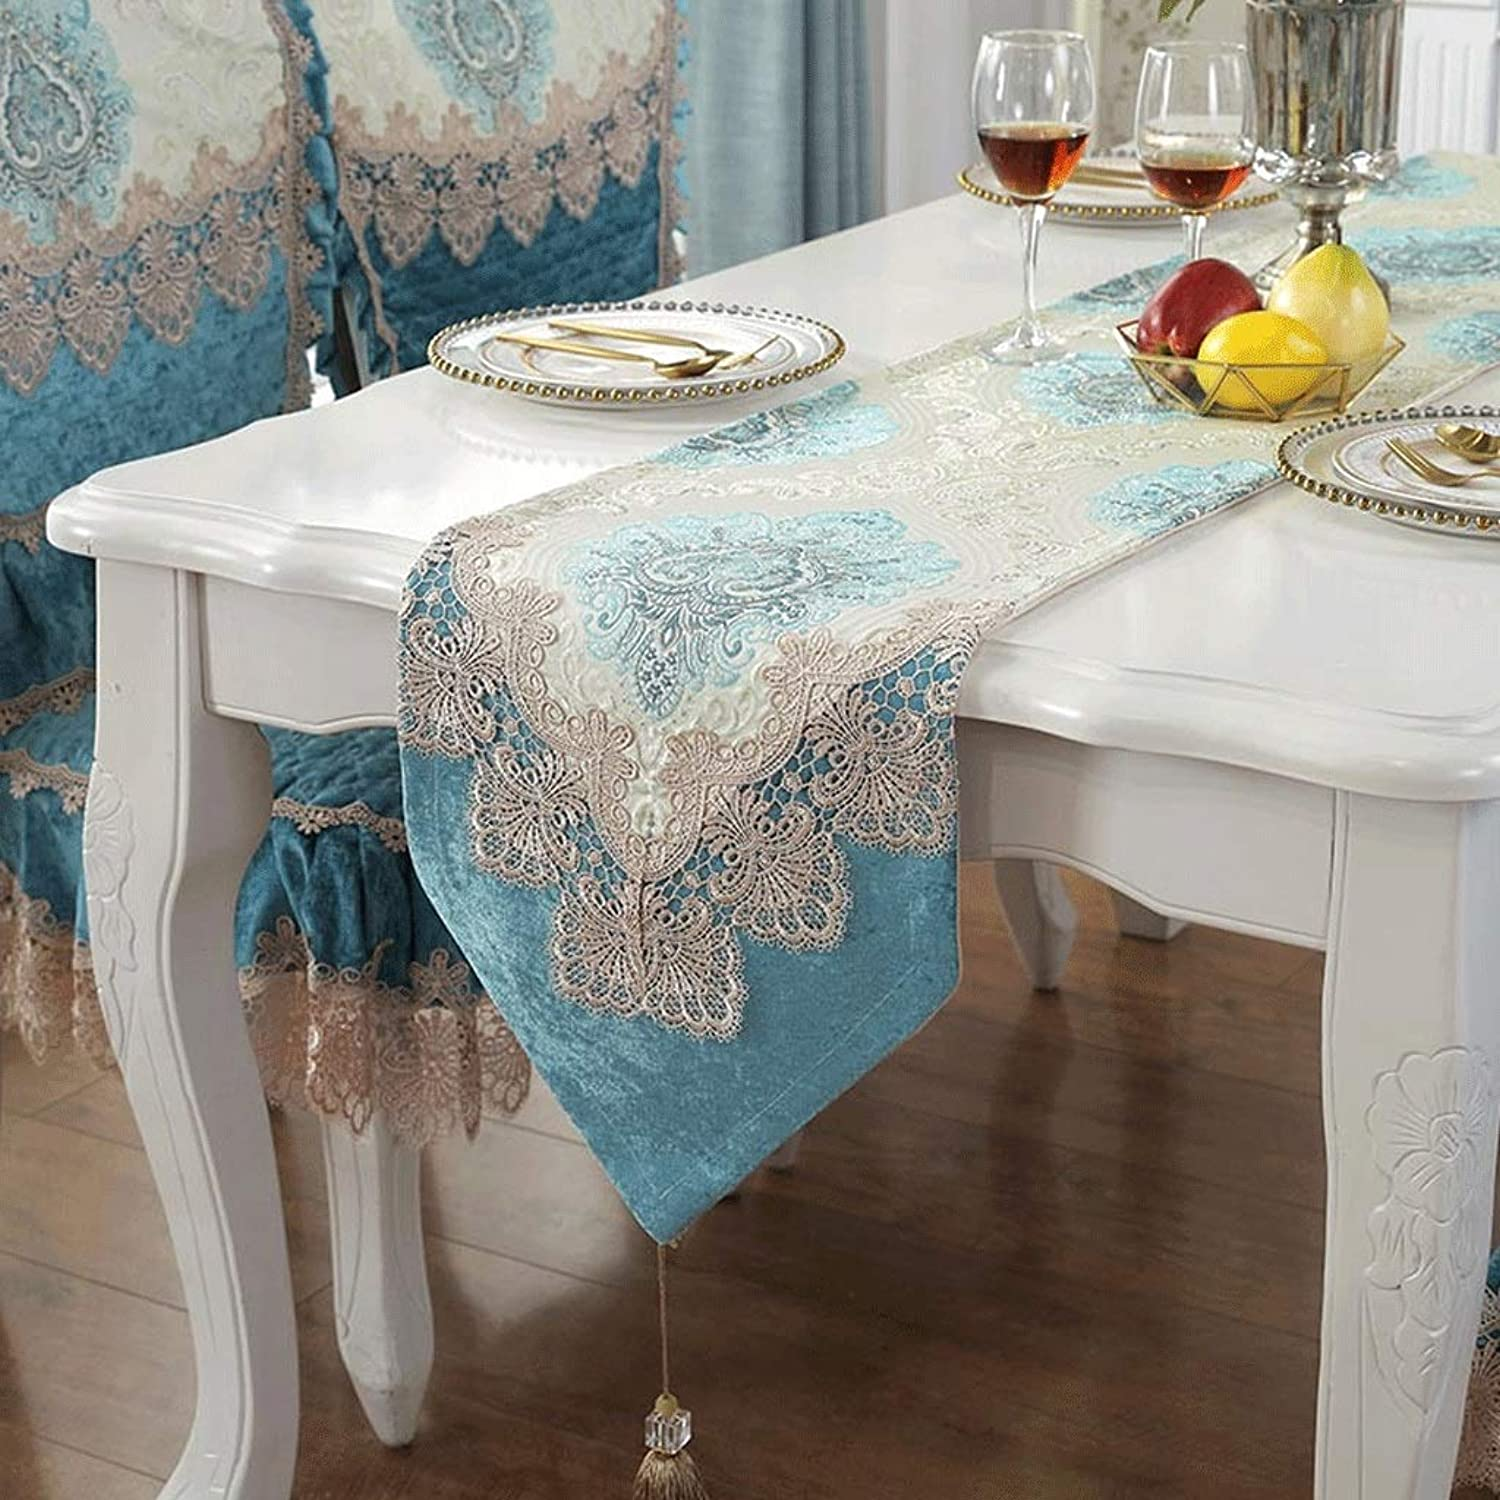 YXN Simple European Table Flag With Tassel Embroidery Design, TV Cabinet Table Table Bunting (Size   33X280CM)